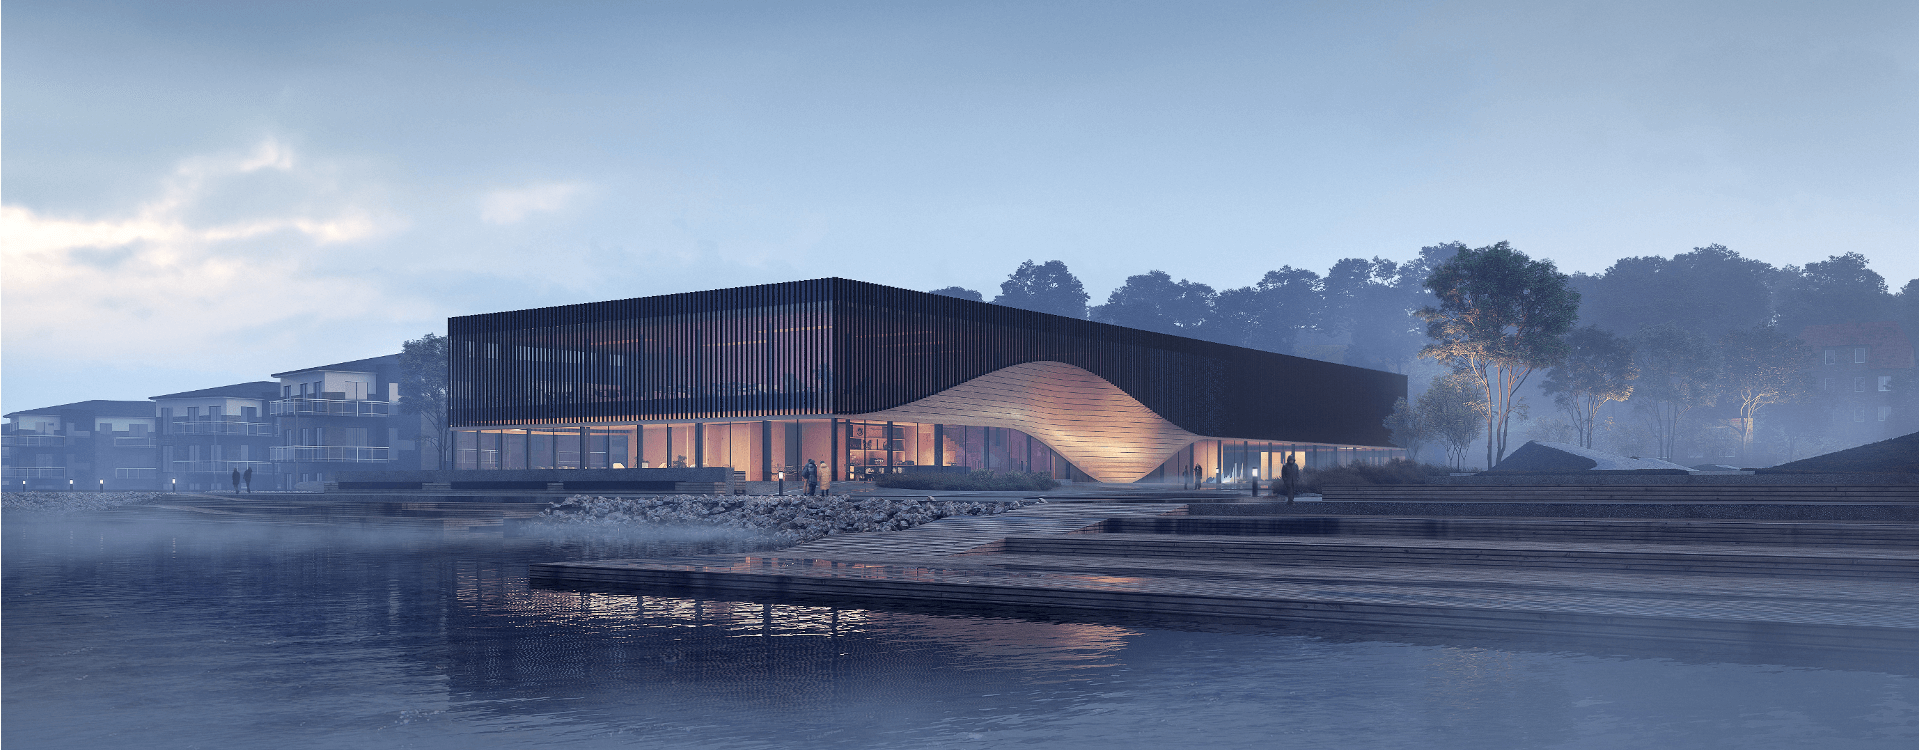 Facade of the new climatorium in Lemvig, Denmark | WSP